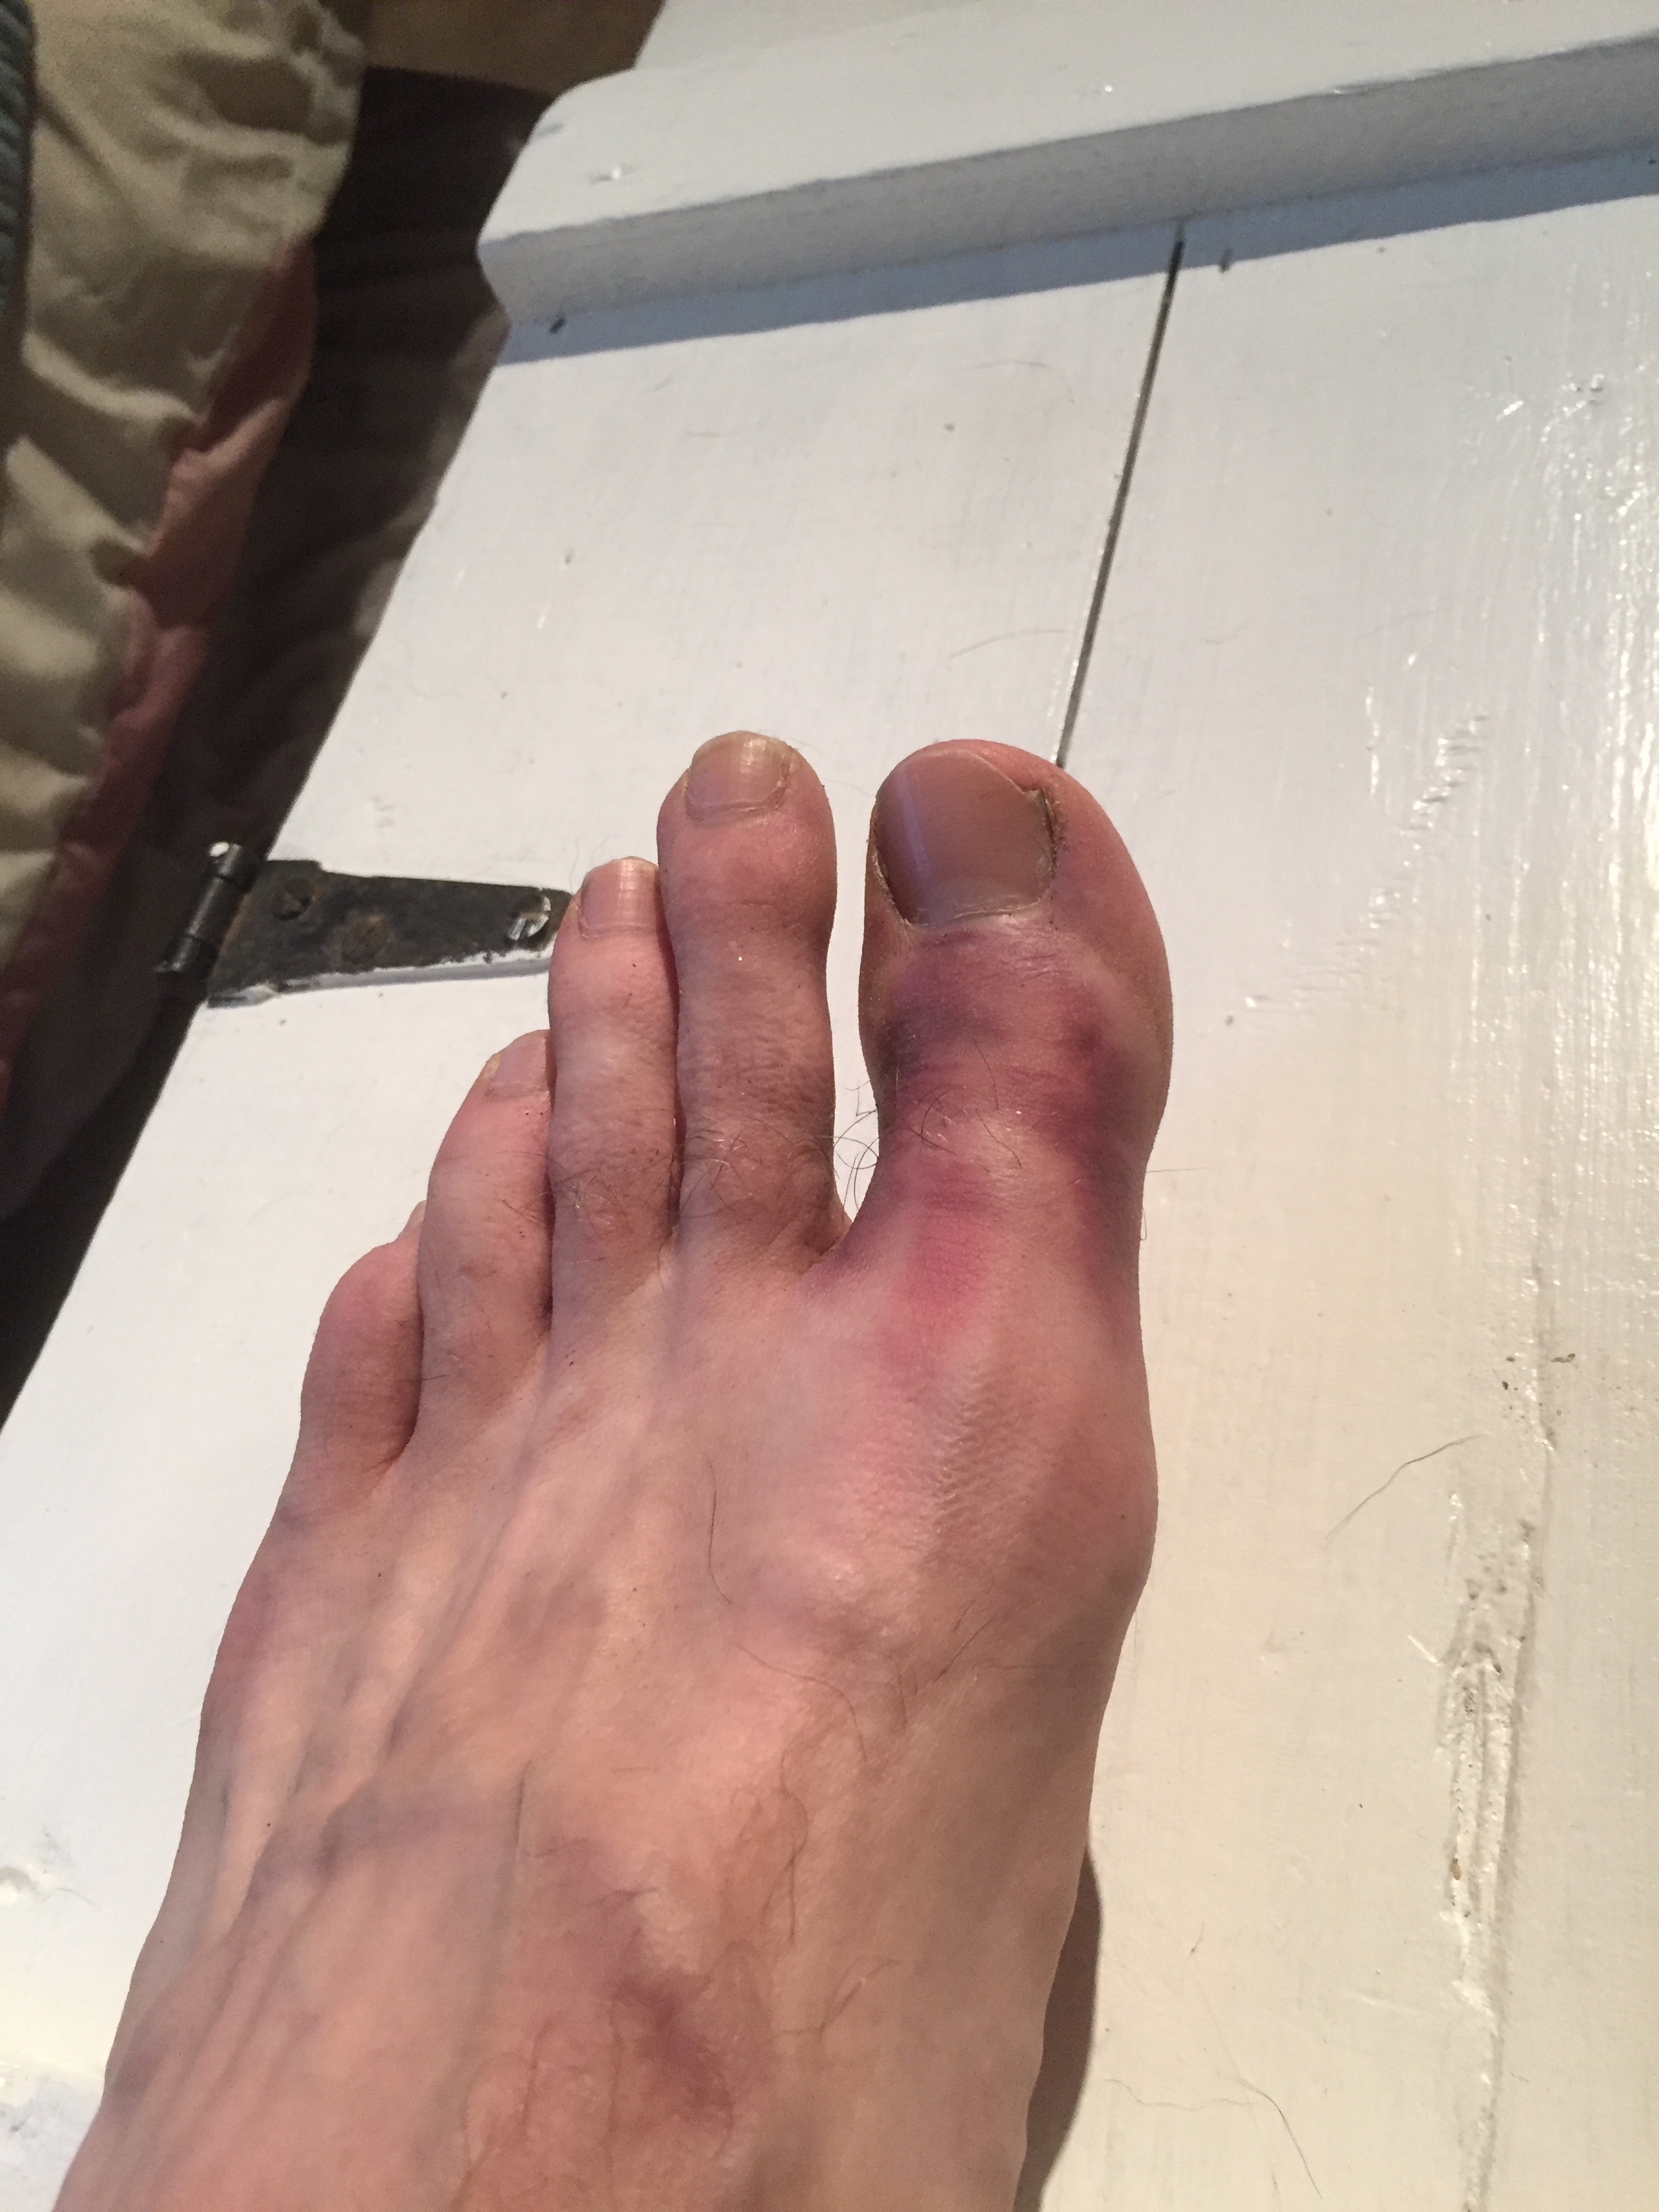 What's up broken toe, 6:31 50K, that's what!